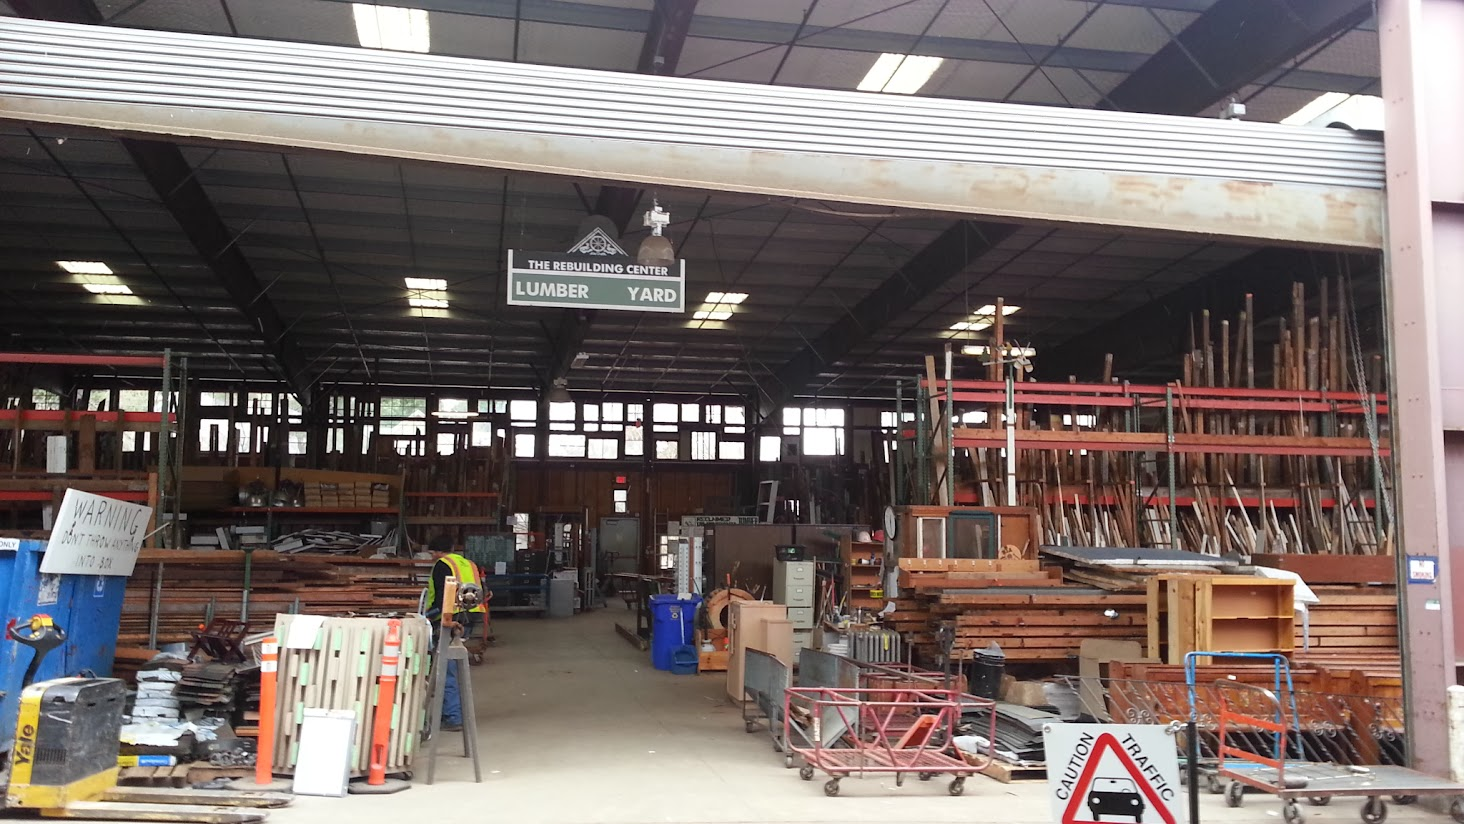 The Rebuilding Center's lumber yard